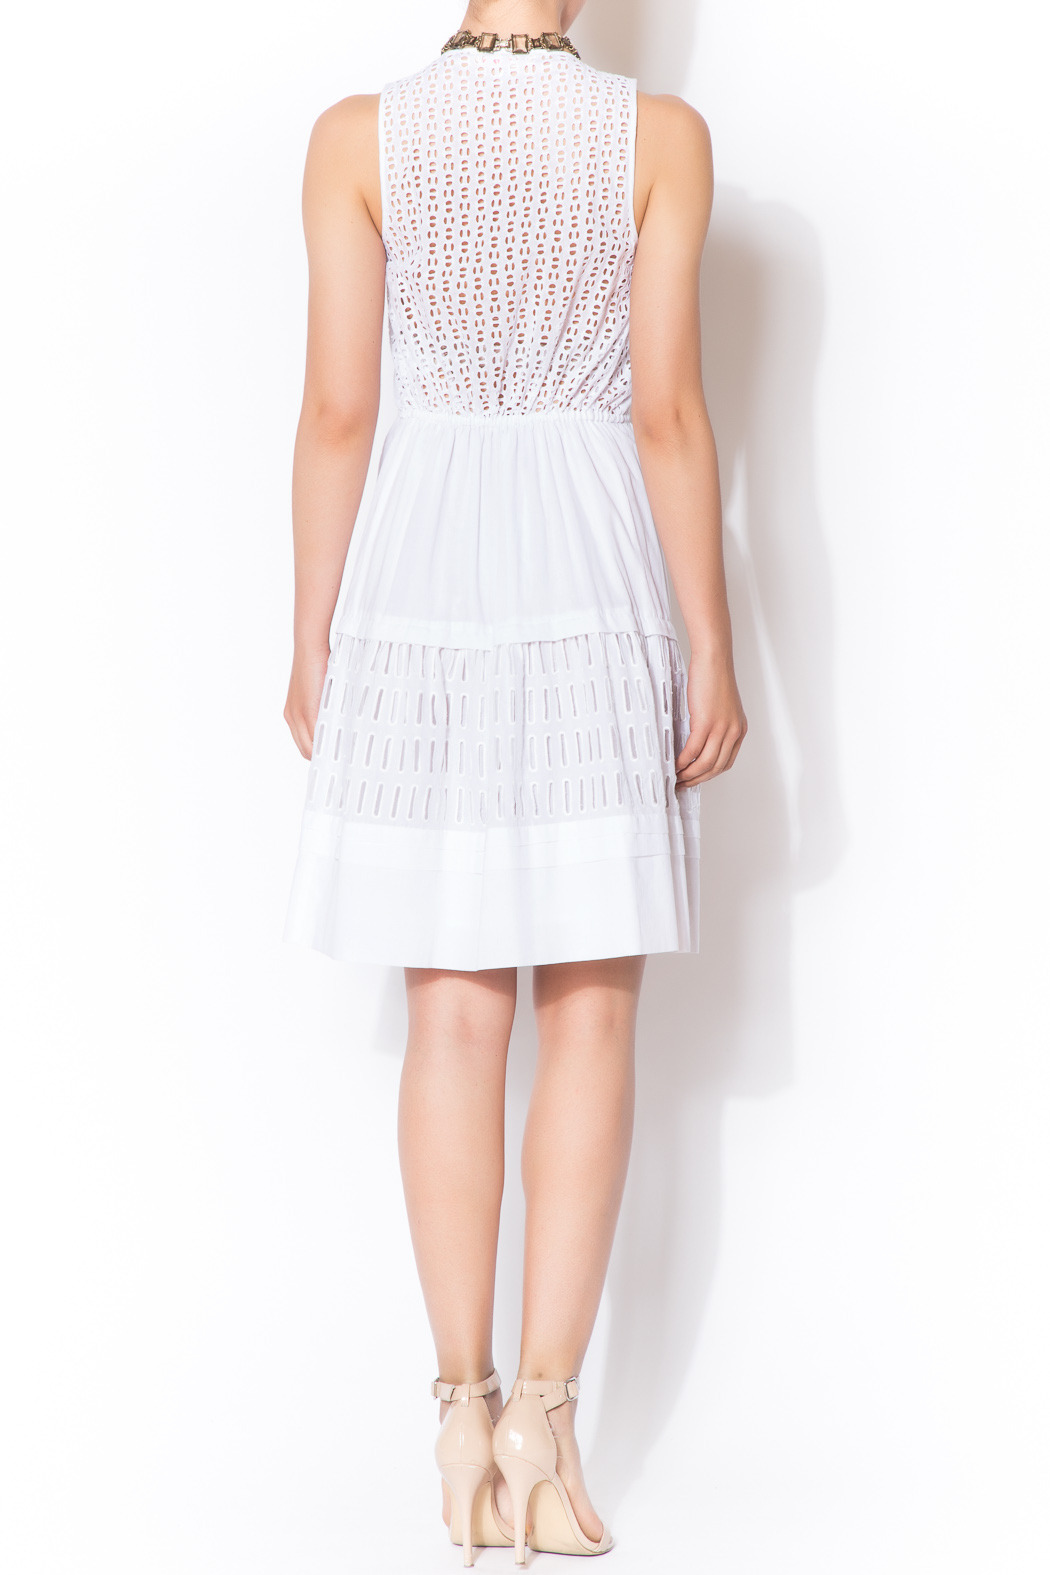 Clothing Dresses Rebecca Taylor Eyelet Dress